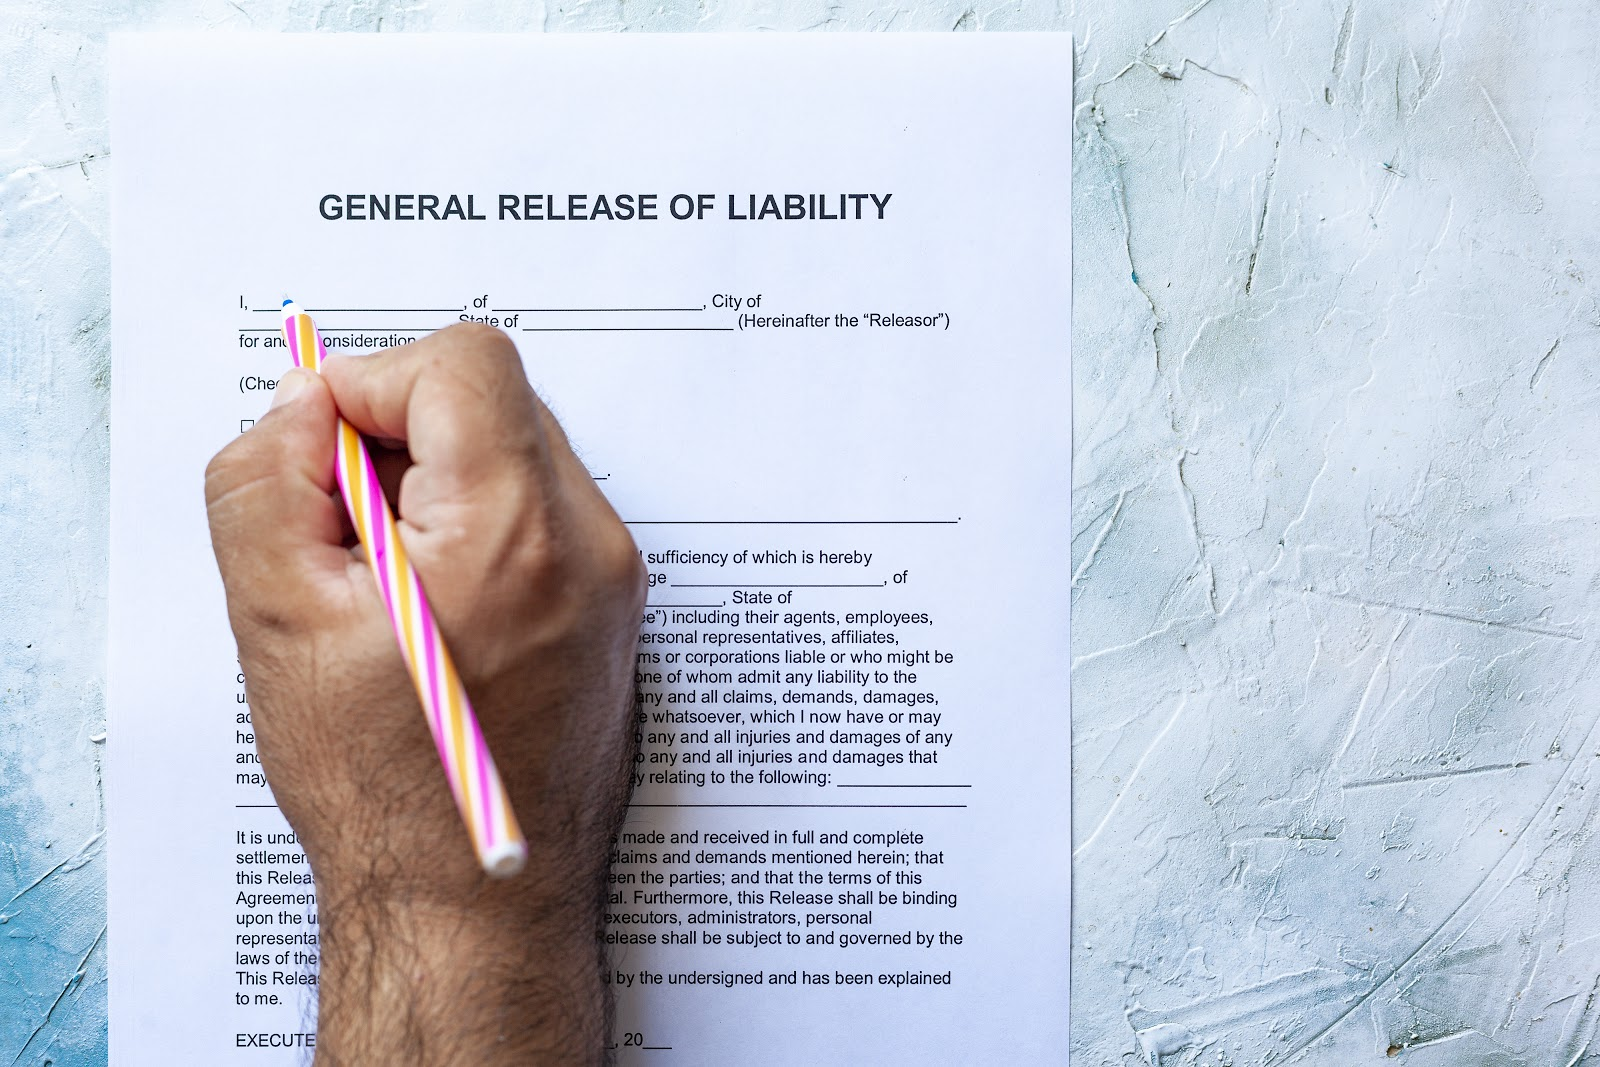 Man signing a General Release of Liability form